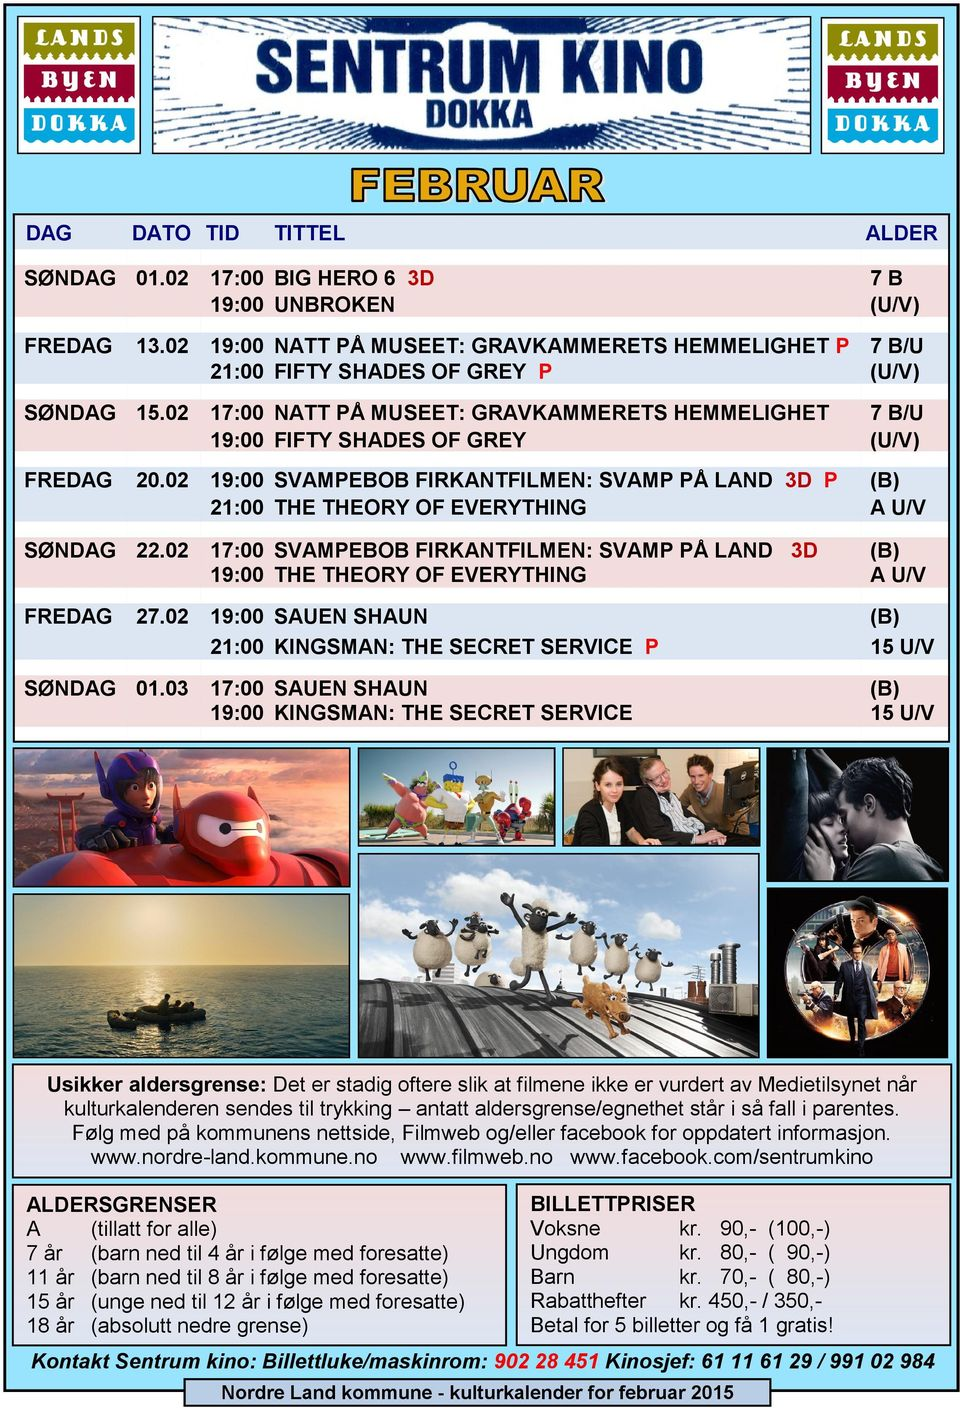 02 19:00 SVAMPEBOB FIRKANTFILMEN: SVAMP PÅ LAND 3D P (B) 21:00 THE THEORY OF EVERYTHING A U/V SØNDAG 22.